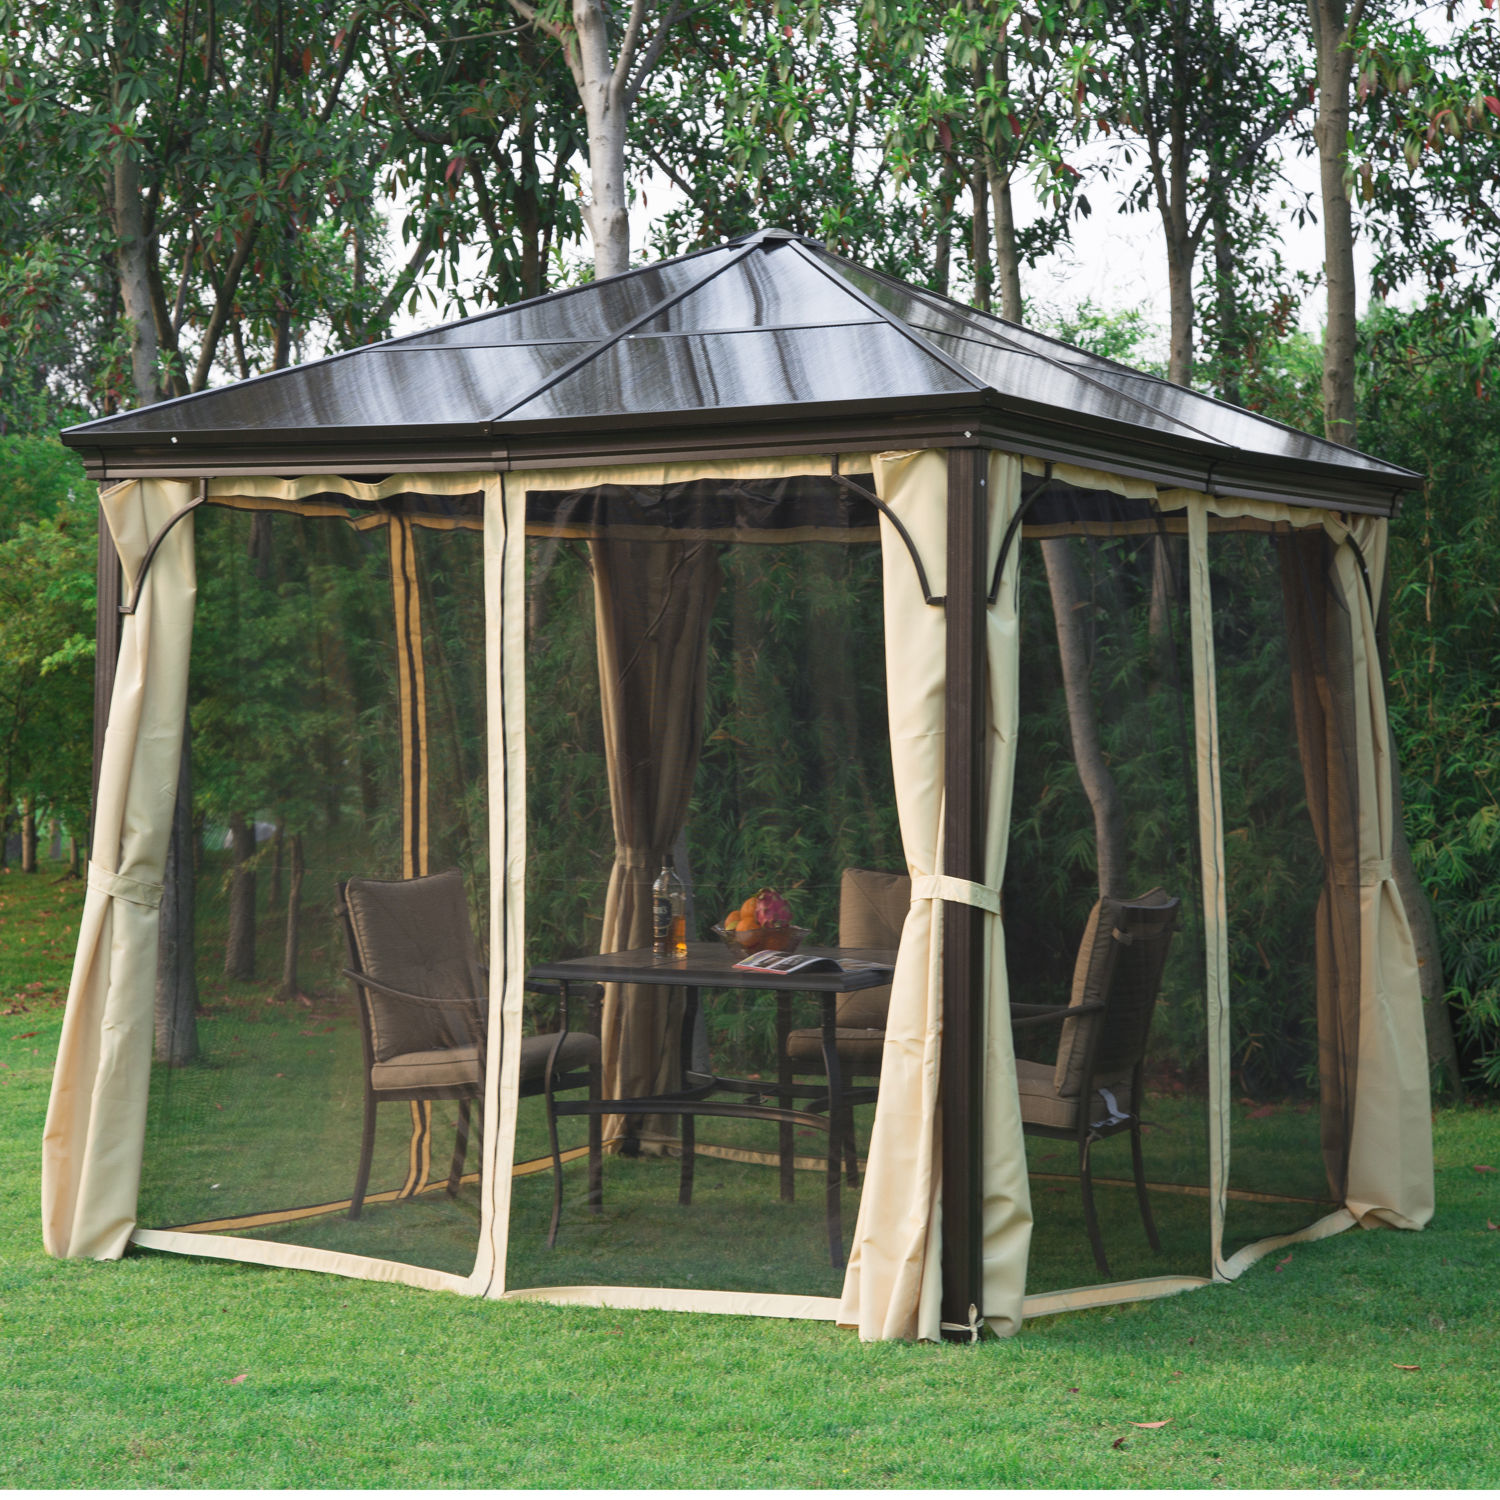 Image of £499.99 Outsunny 3x3 m Gazebo W/Mosquito Net-Brown/Black/Beige / 3 x 3m Patio Aluminium Canopy Marquee Party Tent Hardtop Roof Garden Shelter w/ Mesh & Side Walls Wall Maequee 01-0871 5056029892145